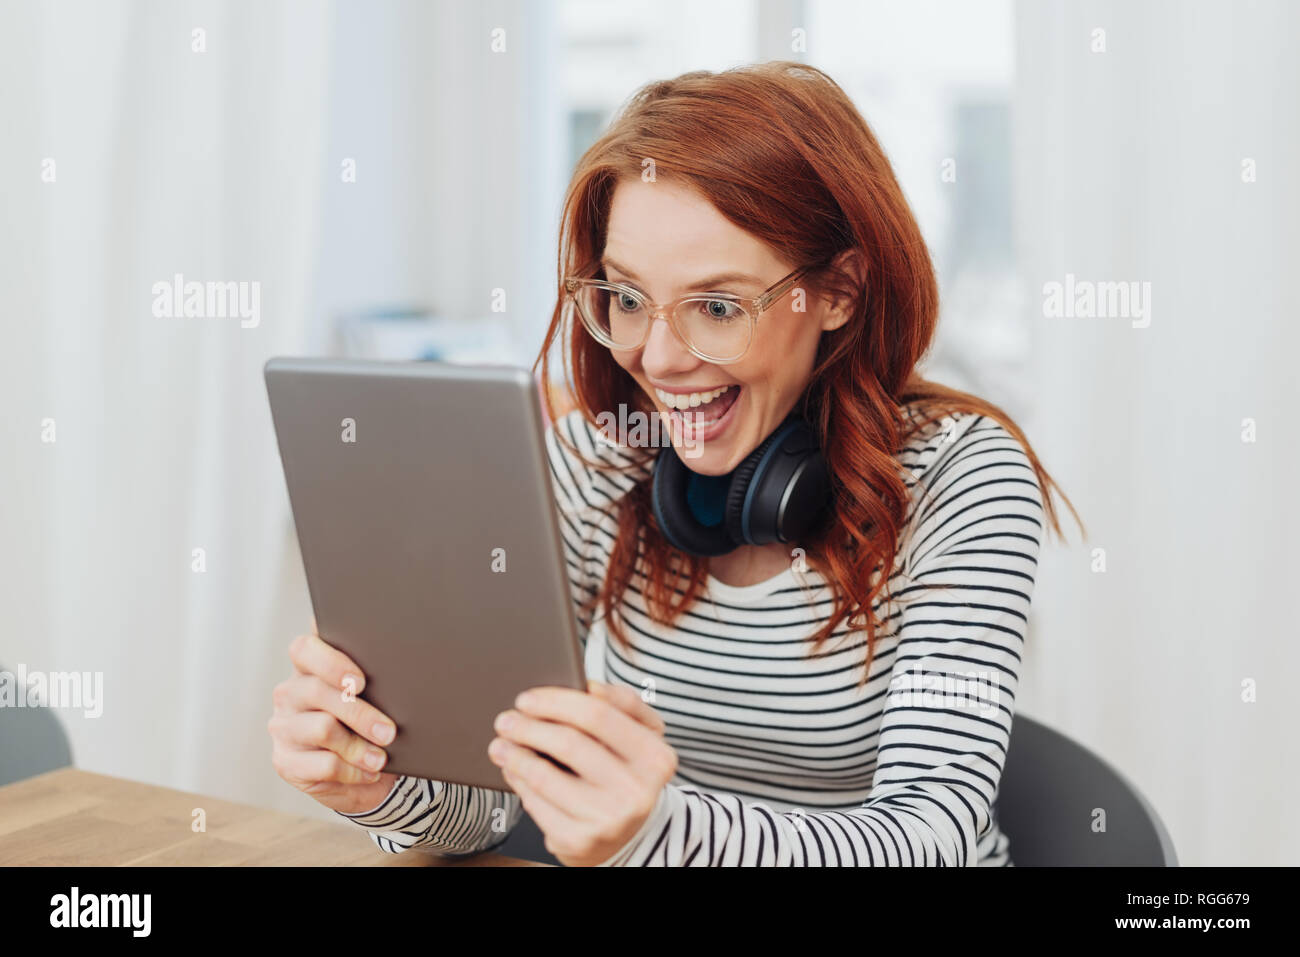 Excited young woman with a gleeful expression staring wide eyed at a handheld tablet computer with an elated smile - Stock Image